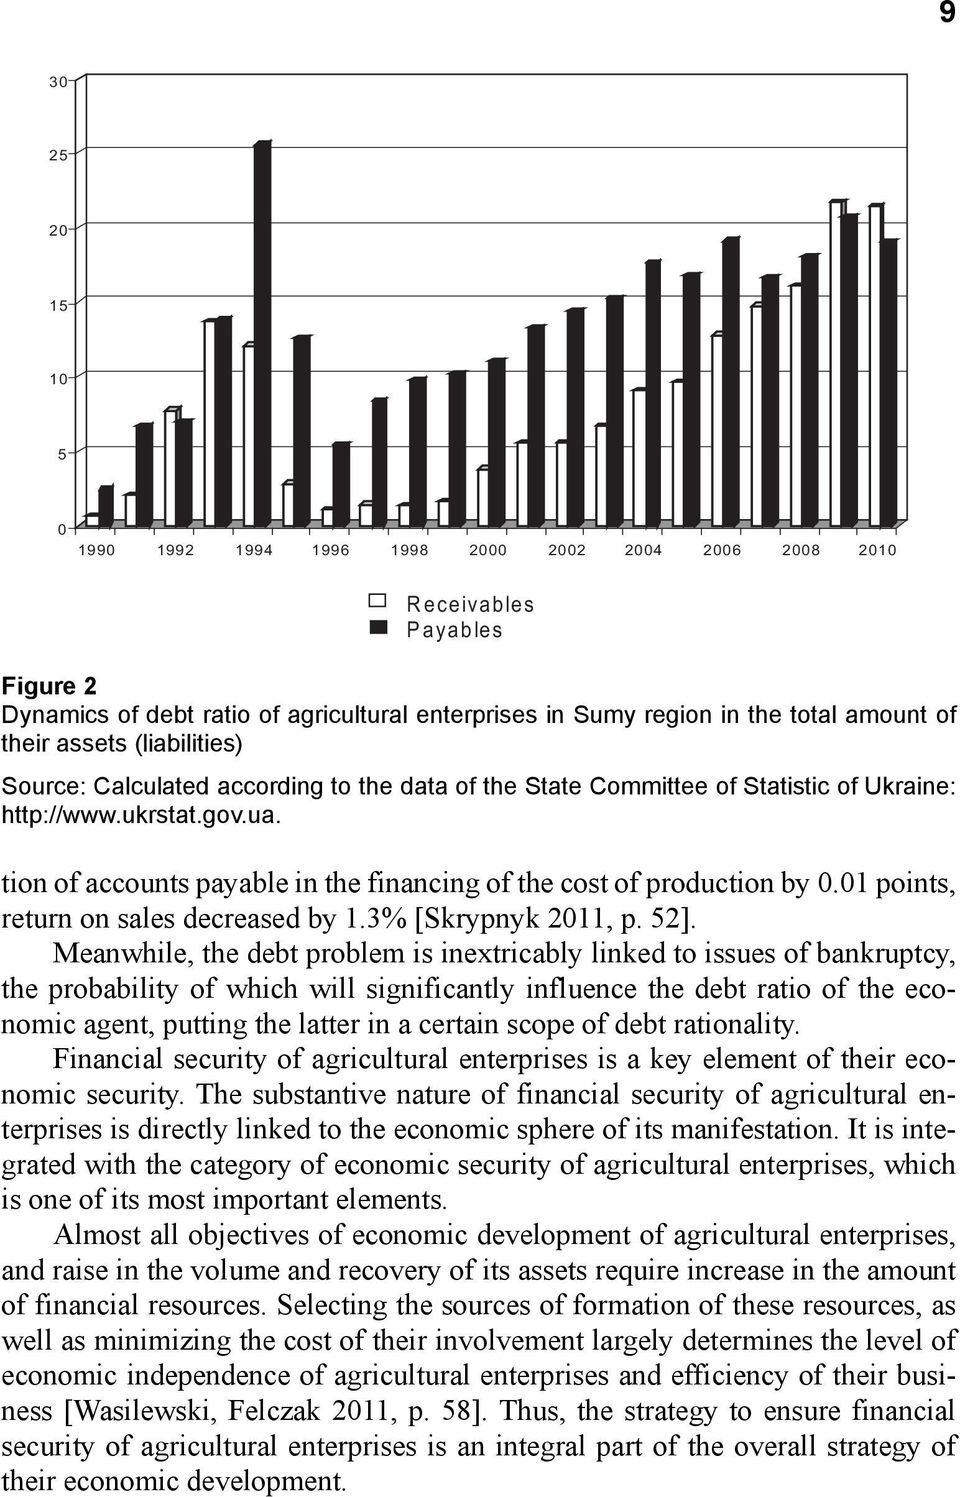 tion of accounts payable in the financing of the cost of production by 0.01 points, return on sales decreased by 1.3% [Skrypnyk 2011, р. 52].